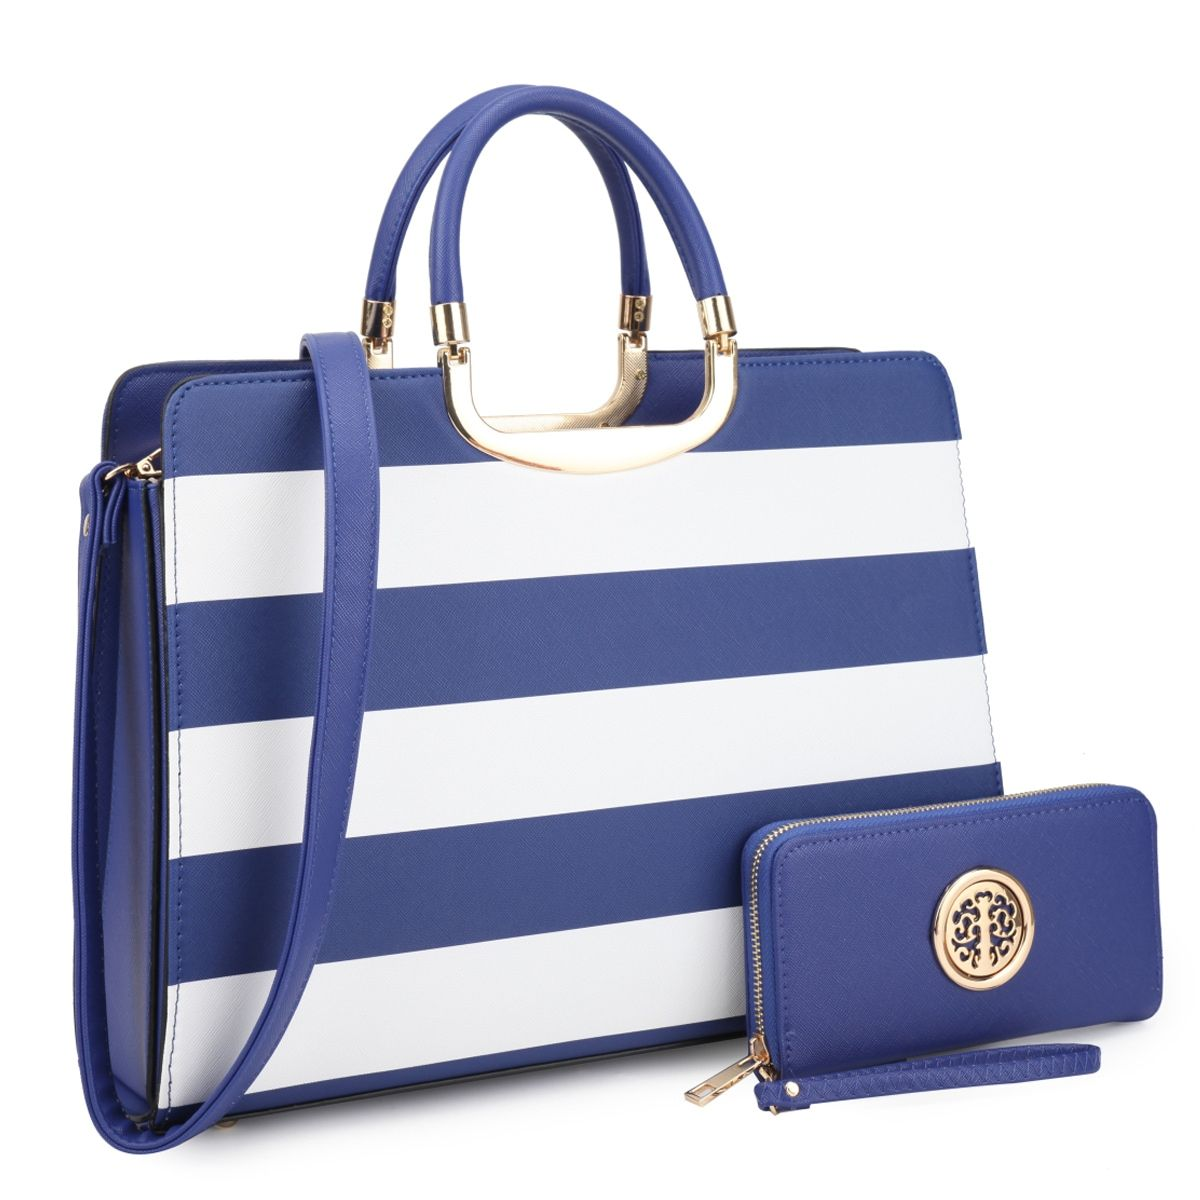 f62c4121db3c Dasein Women s Handbag PU leather Top Handle Briefcase with Matching Wallet  (White Blue)